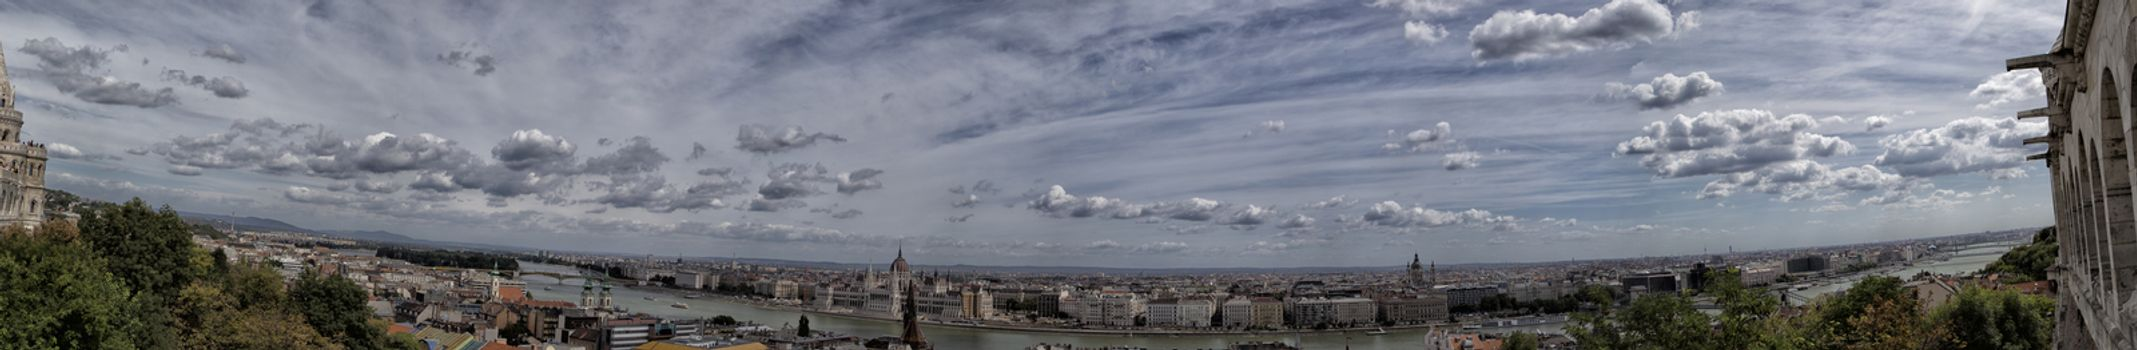 A  view of the Danube river in Budapest in Hungary